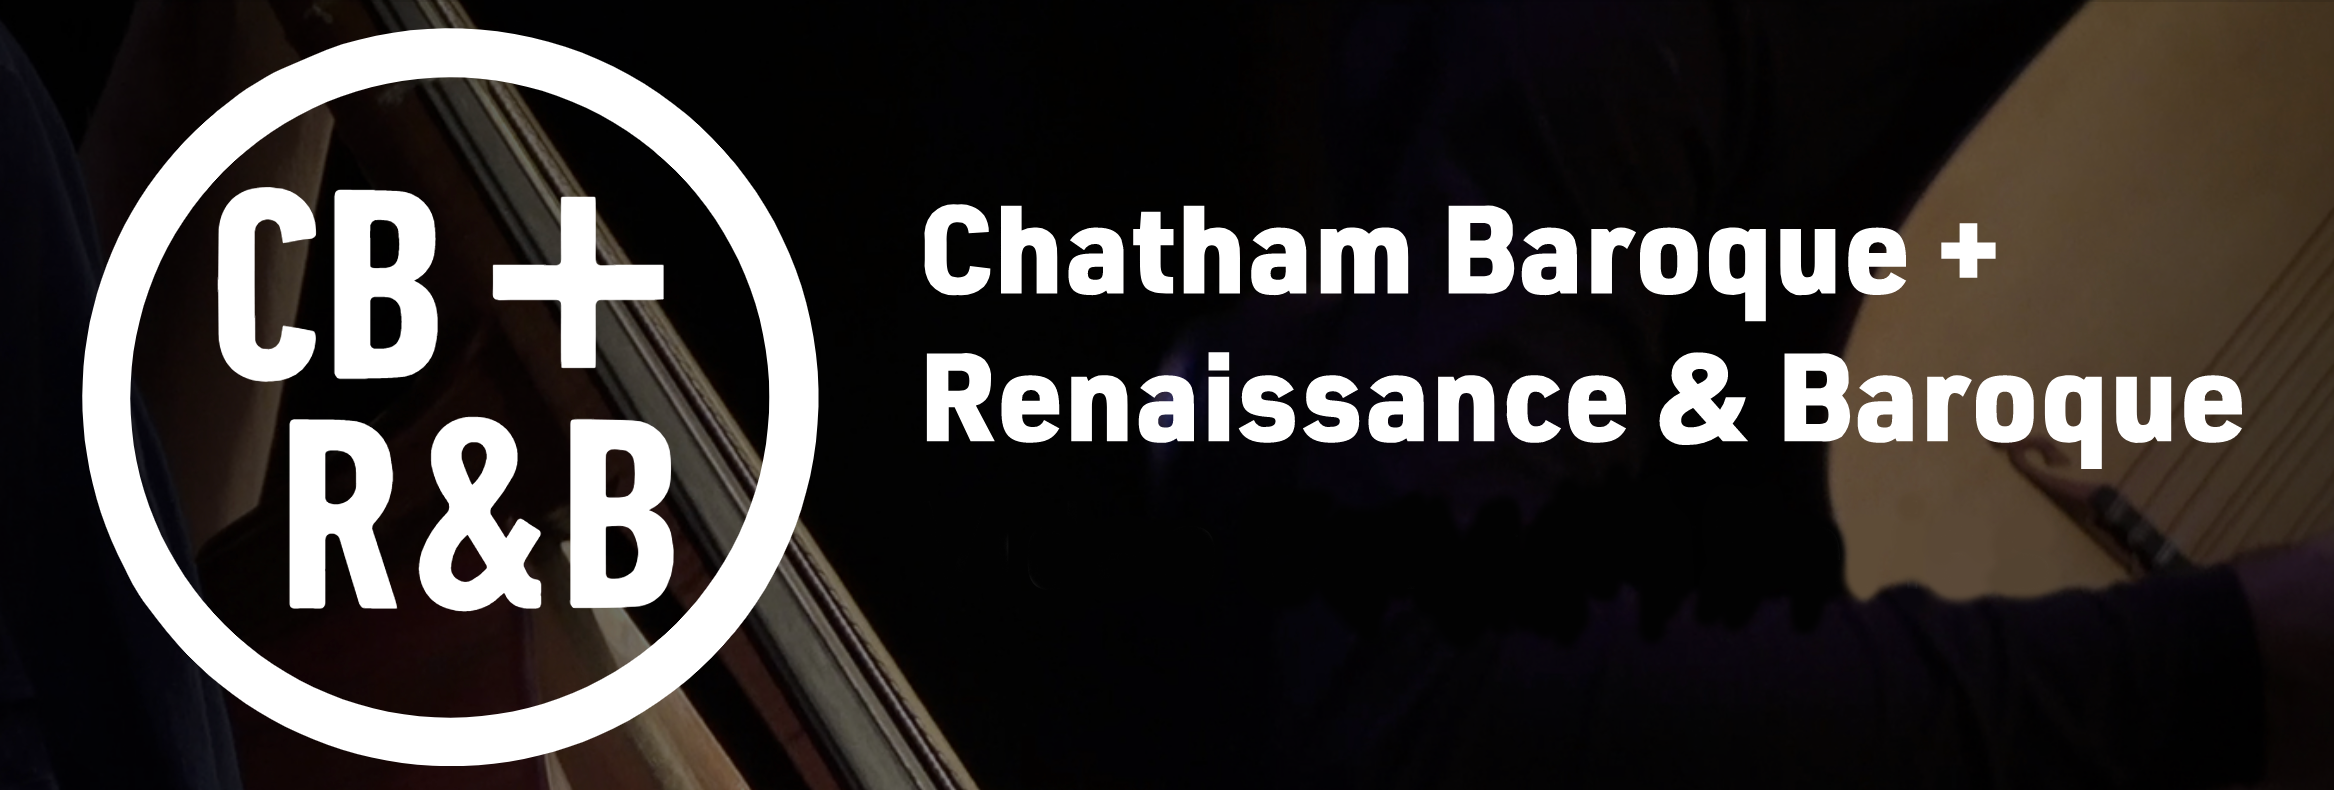 Dark background with white circle around letters: CB + R&B and white text: Chatham Baroque + Renaissance & Baroque